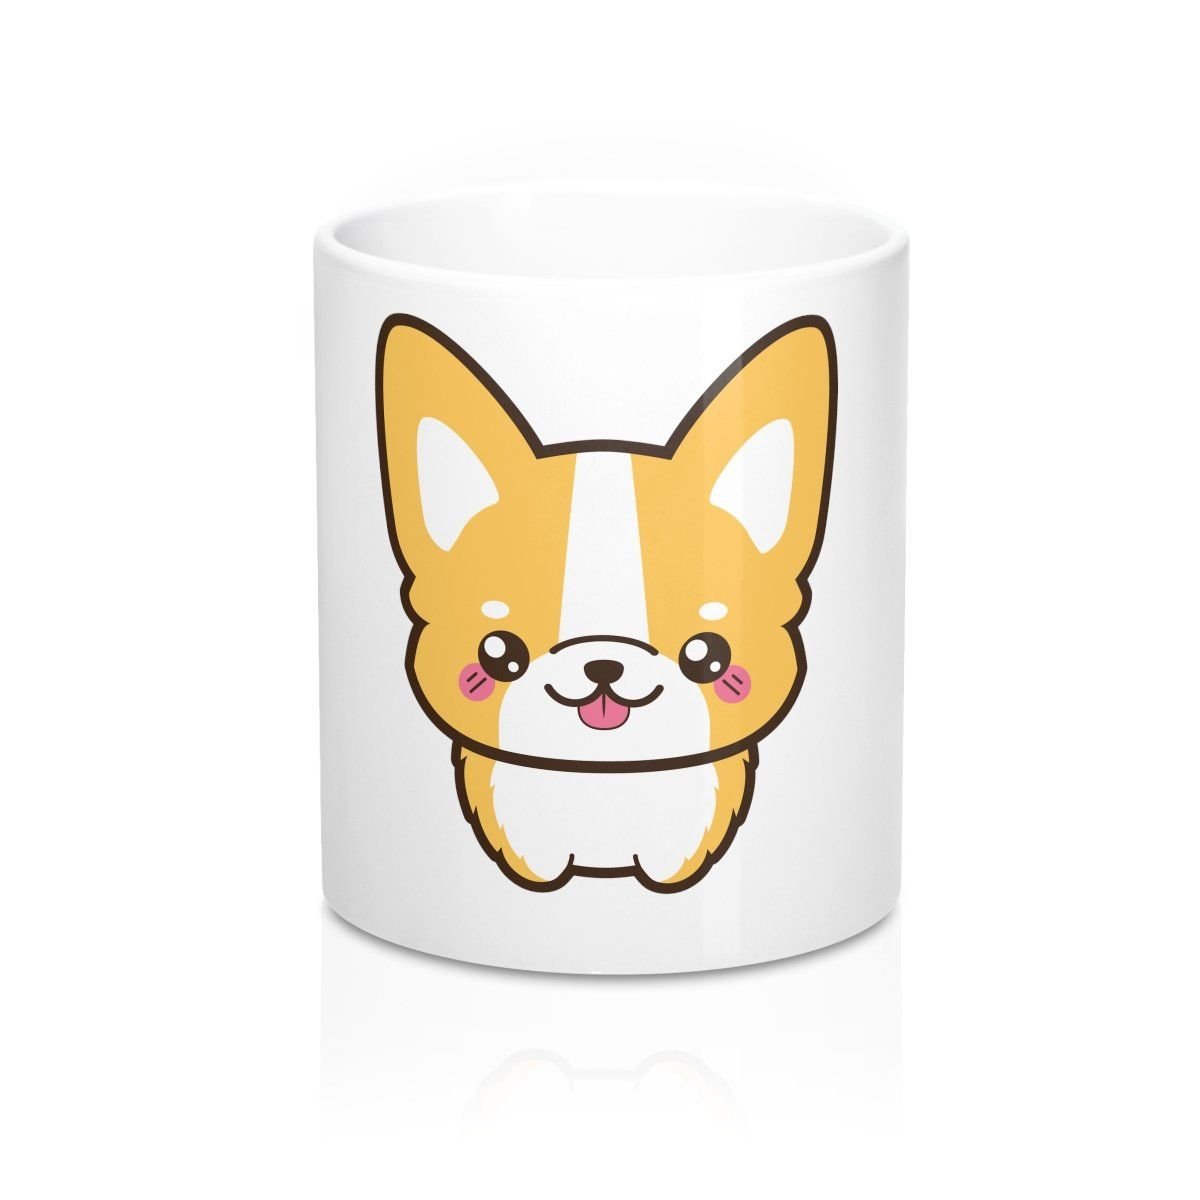 Personalized gift, a coffee mug with a simple cute design. We can also create a custom name, picture or a message to be printed on the coffee mug. This is a great personalized gift for that special someone. This custom mug comes with 11 oz, made with white ceramic. The mug has a c-handles with rounded corners. This cus #custommugs